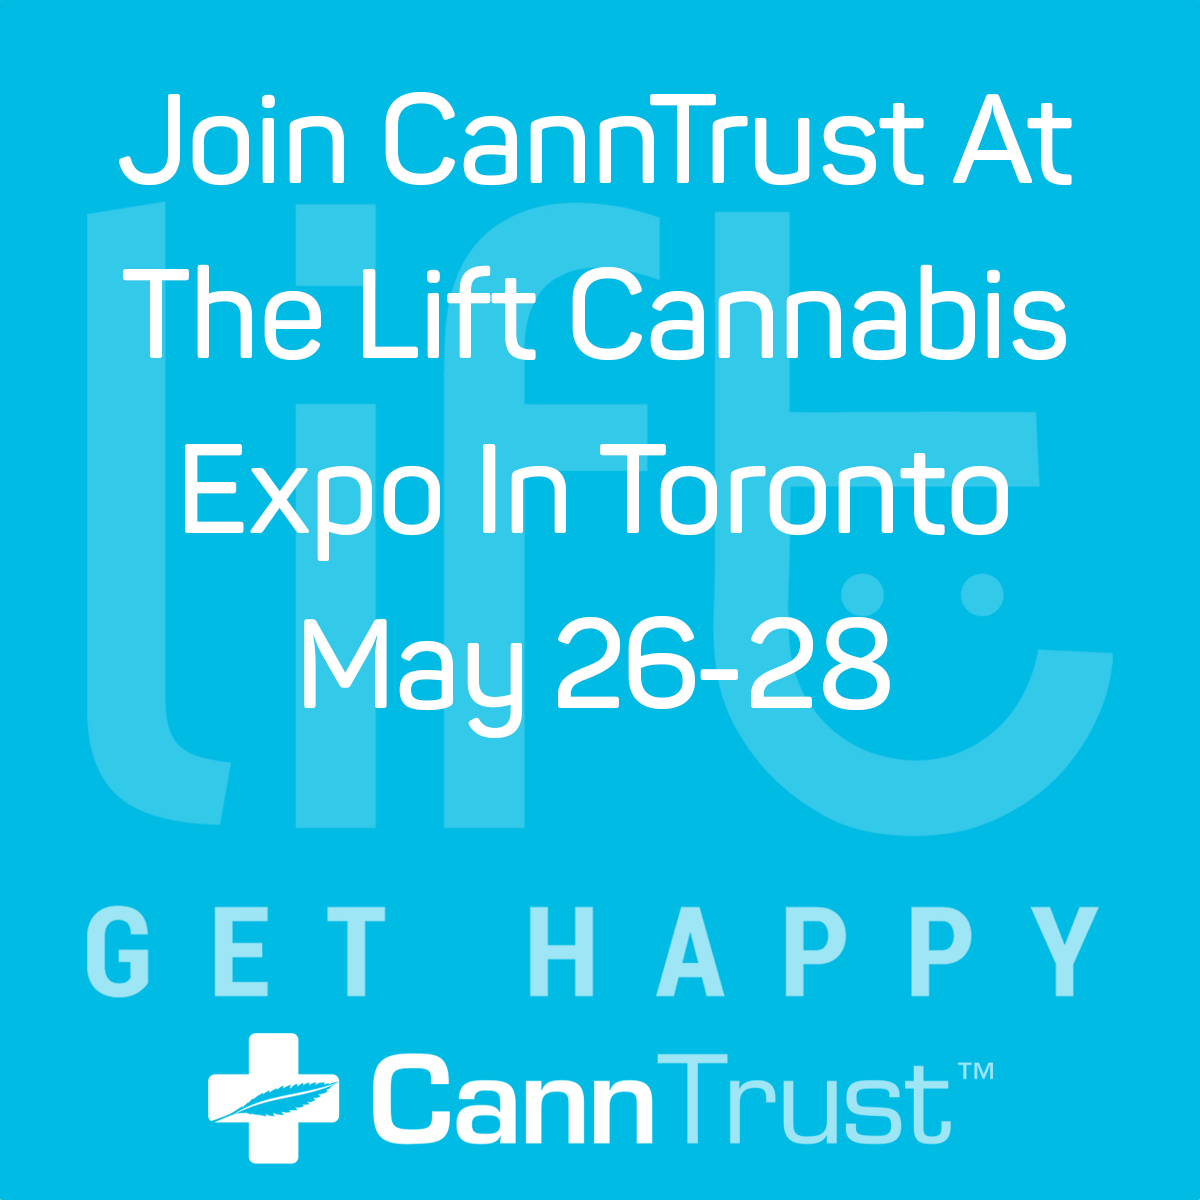 Lift Cannabis Expo